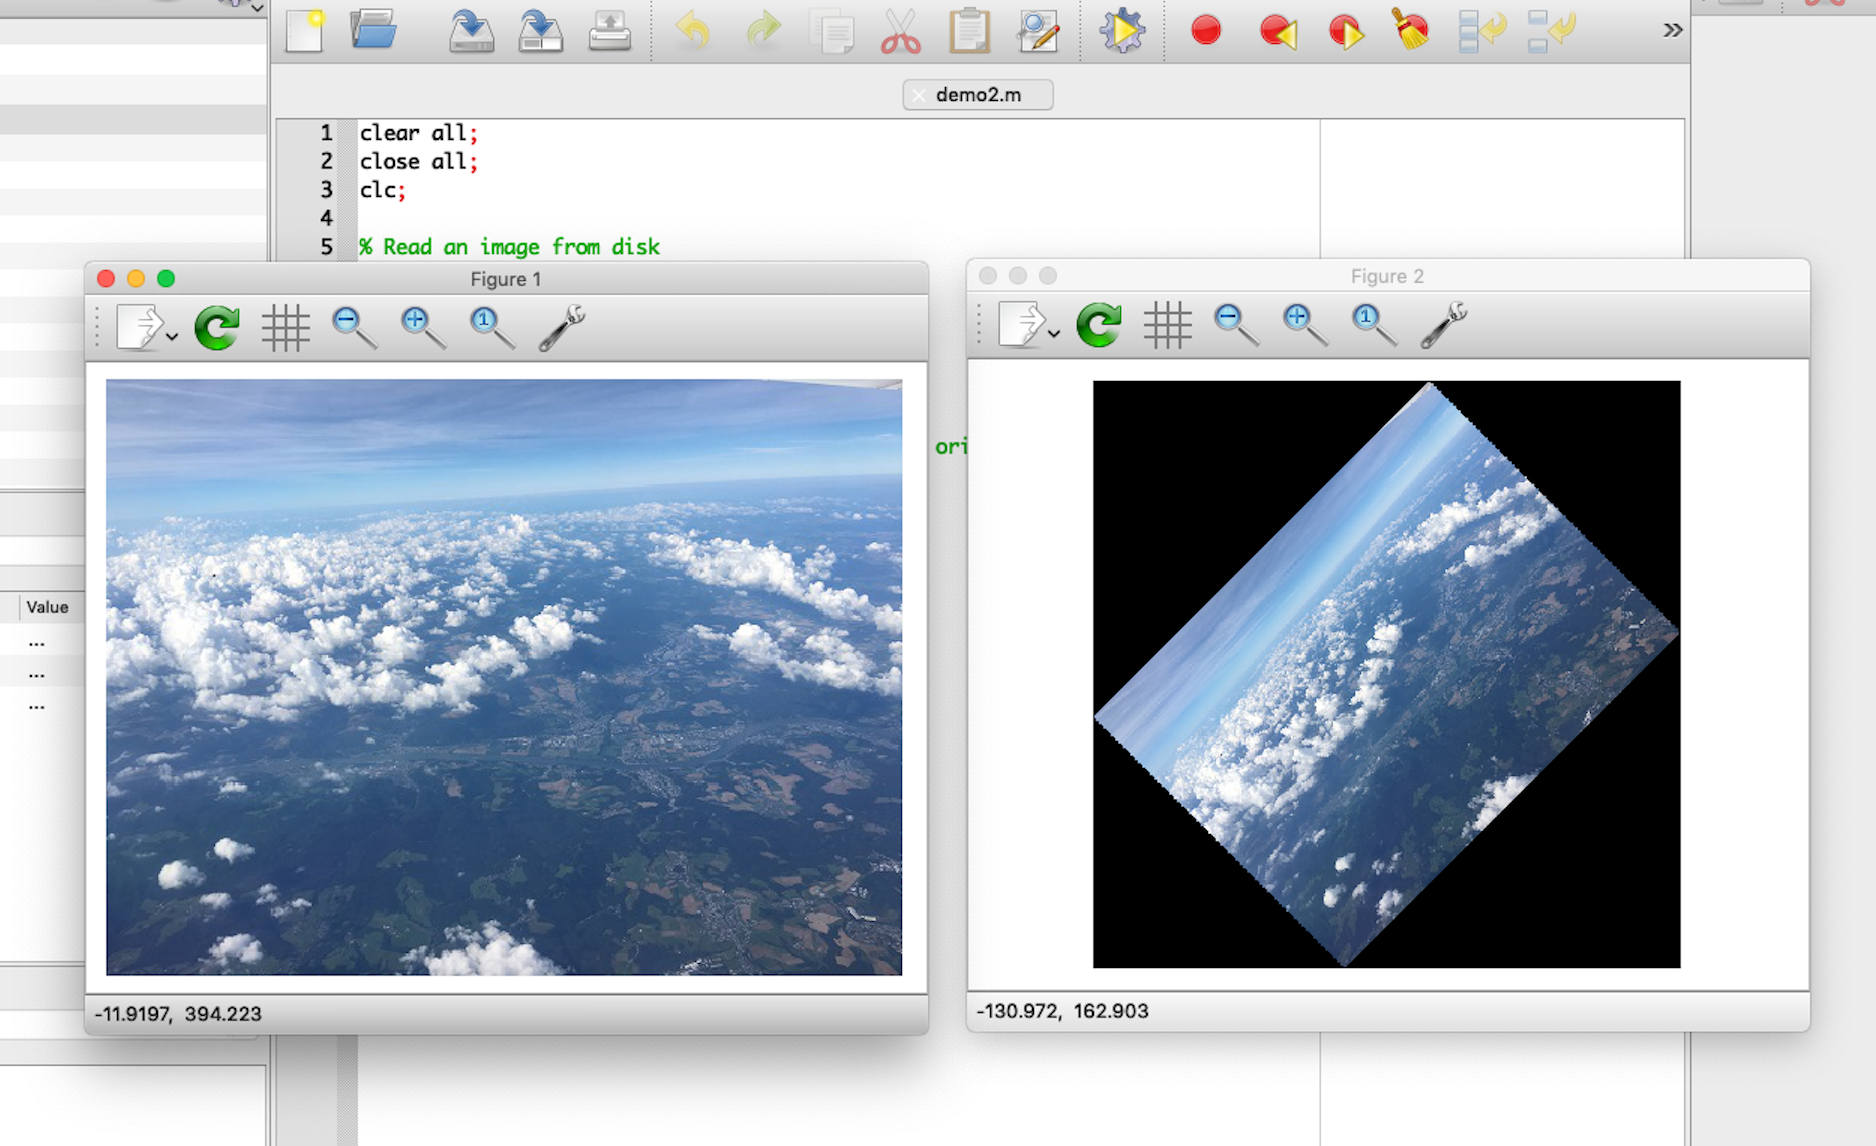 macOS Octave 4.4.1 image processing